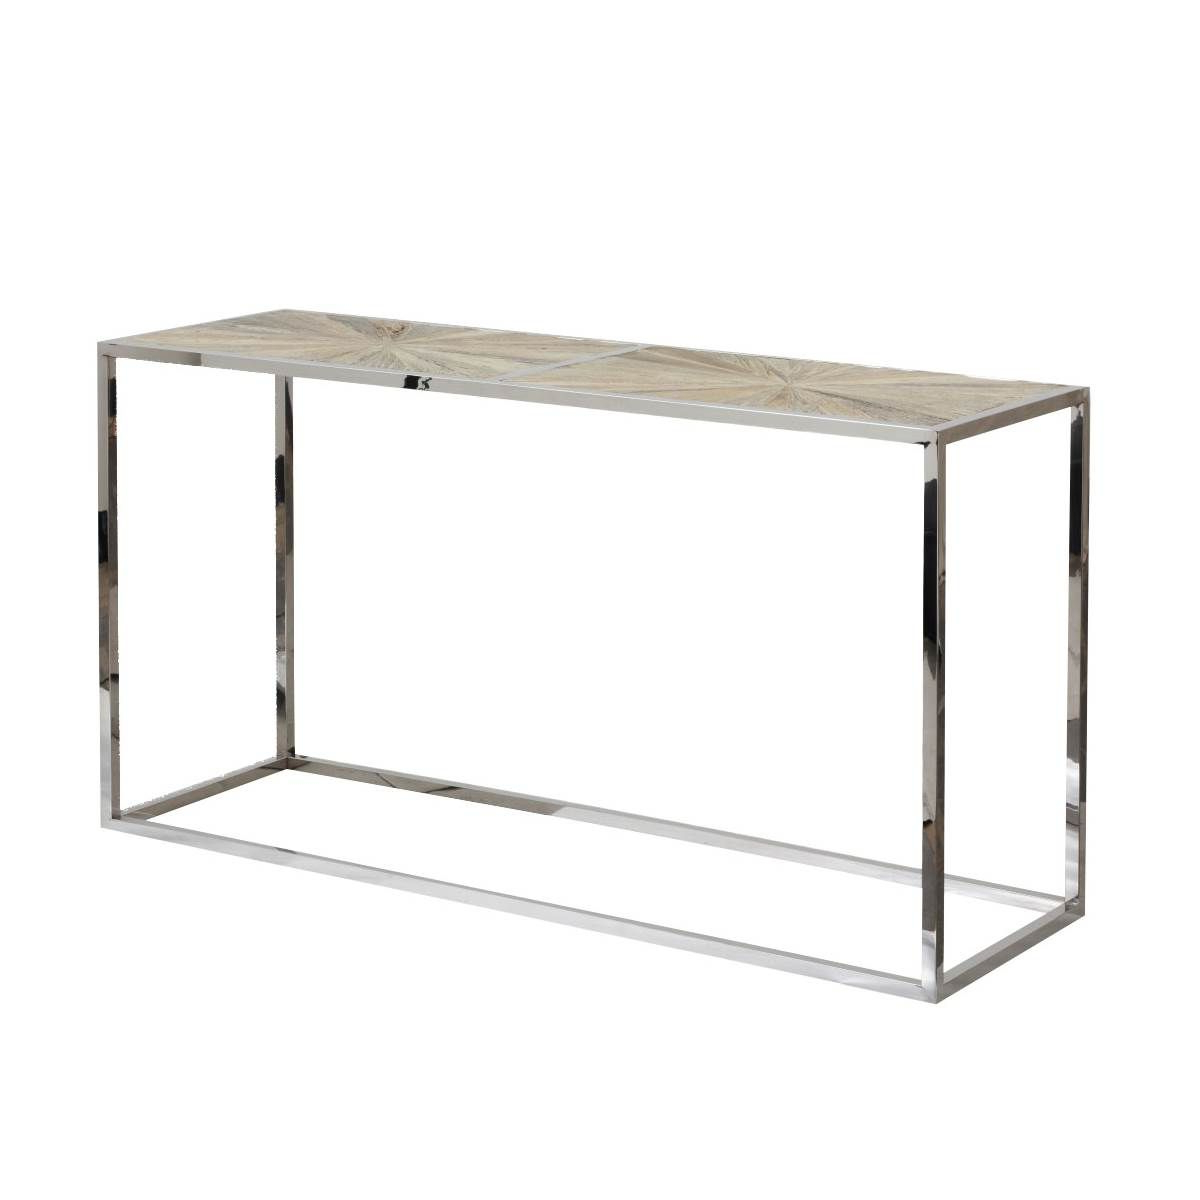 Parquet Console Table | Marshall | Pinterest Regarding Parsons Black Marble Top & Stainless Steel Base 48X16 Console Tables (View 14 of 20)